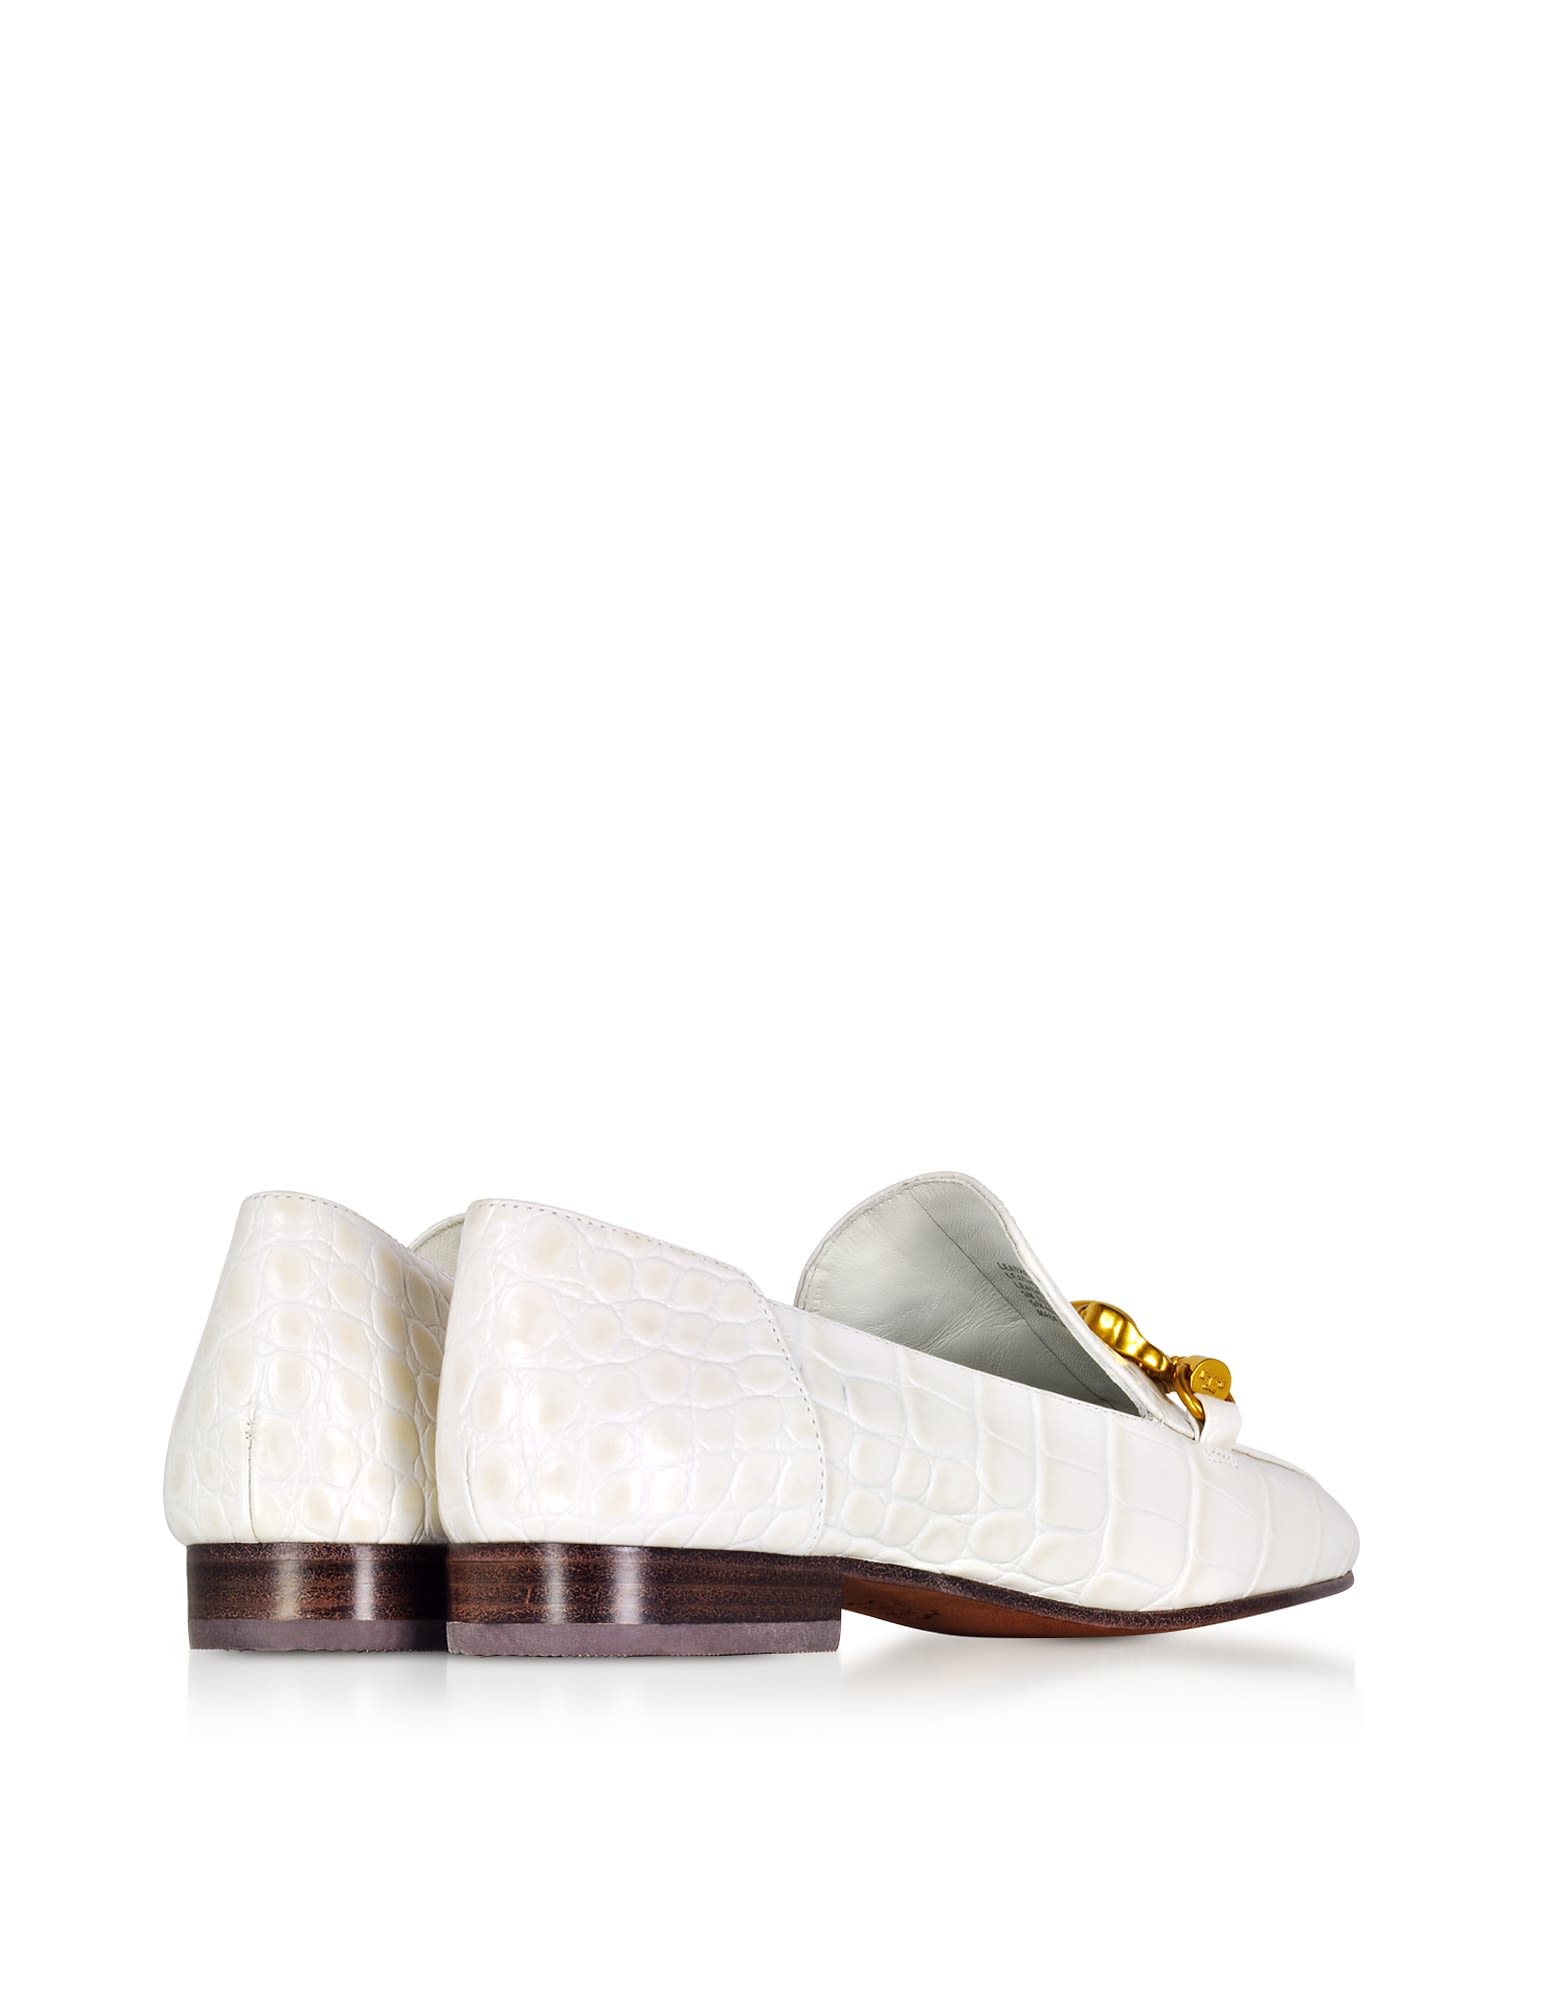 Tory Burch Jessa White Croco Embossed Leather Loafers W-goldtone Horse Hardware Cheap Sale Enjoy Cheap Best Latest Collections For Sale tHlvlX